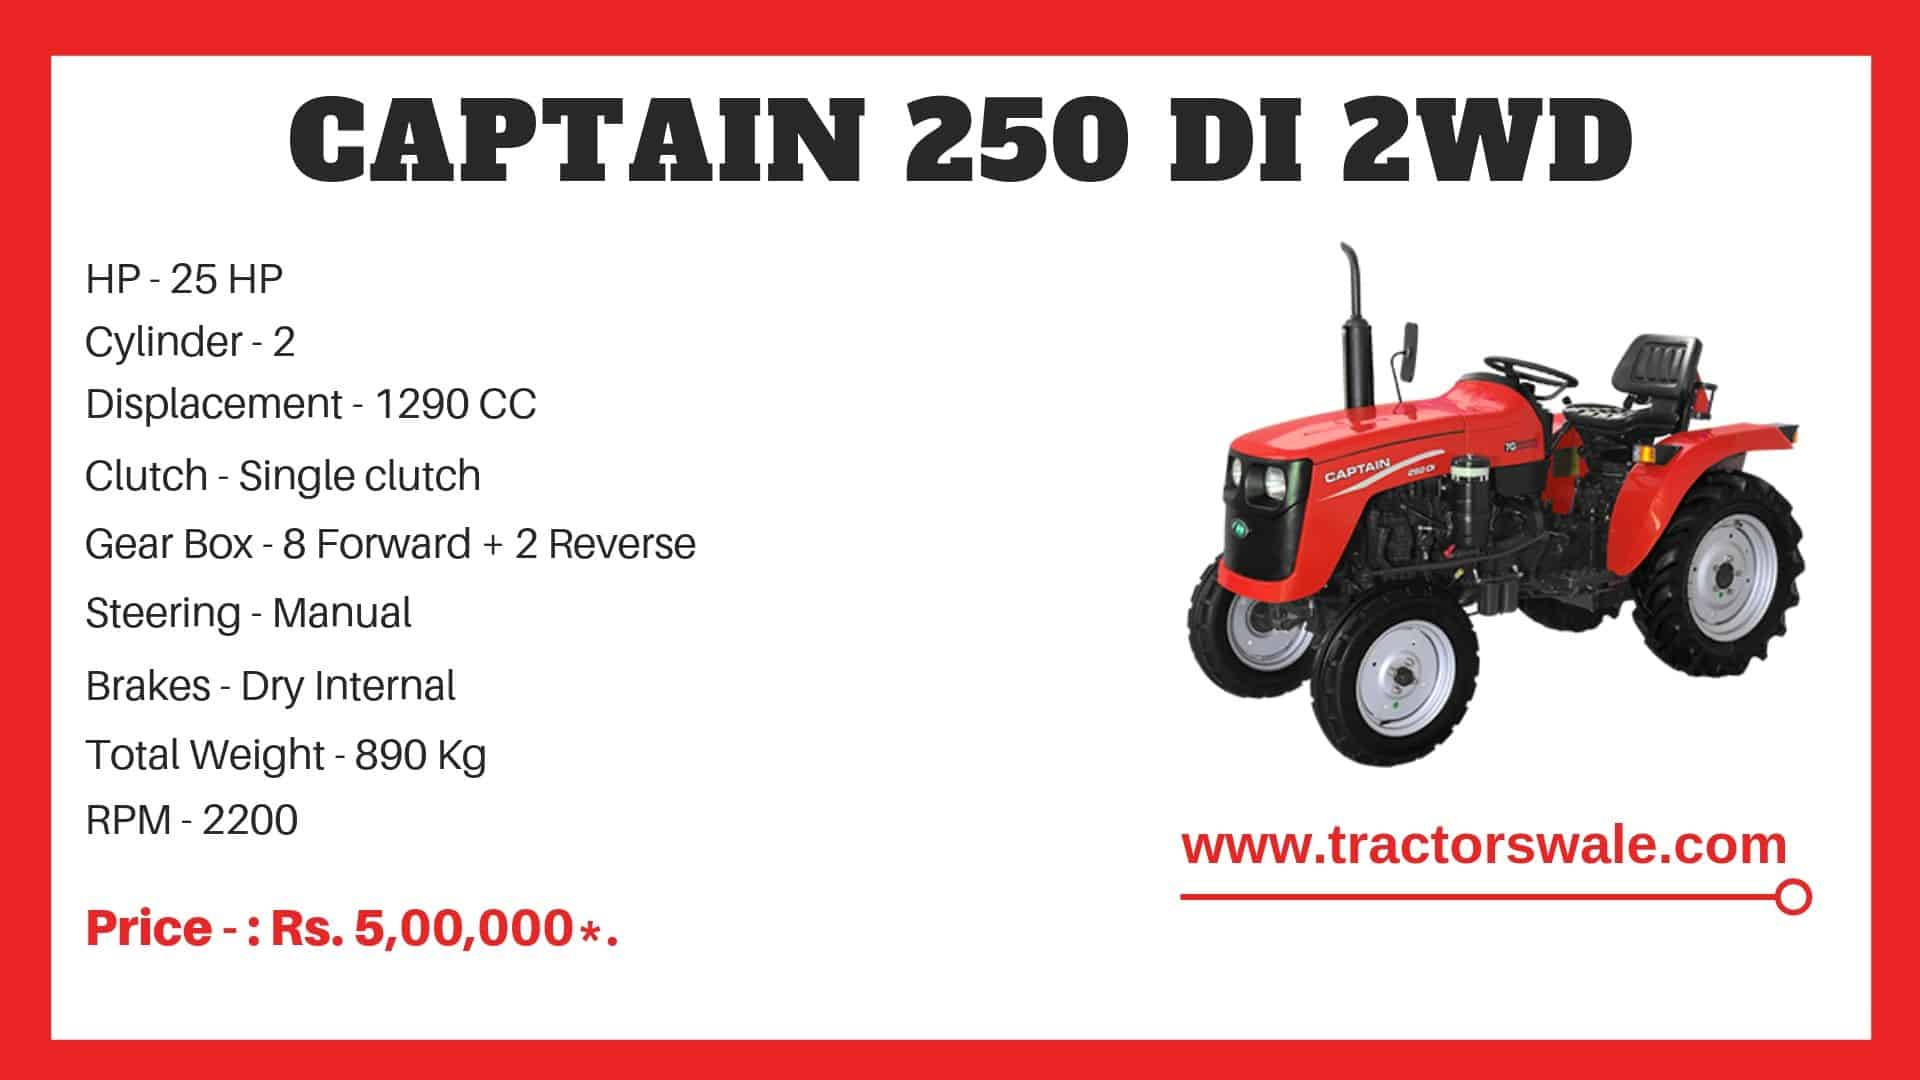 Specification of Captain 250 DI